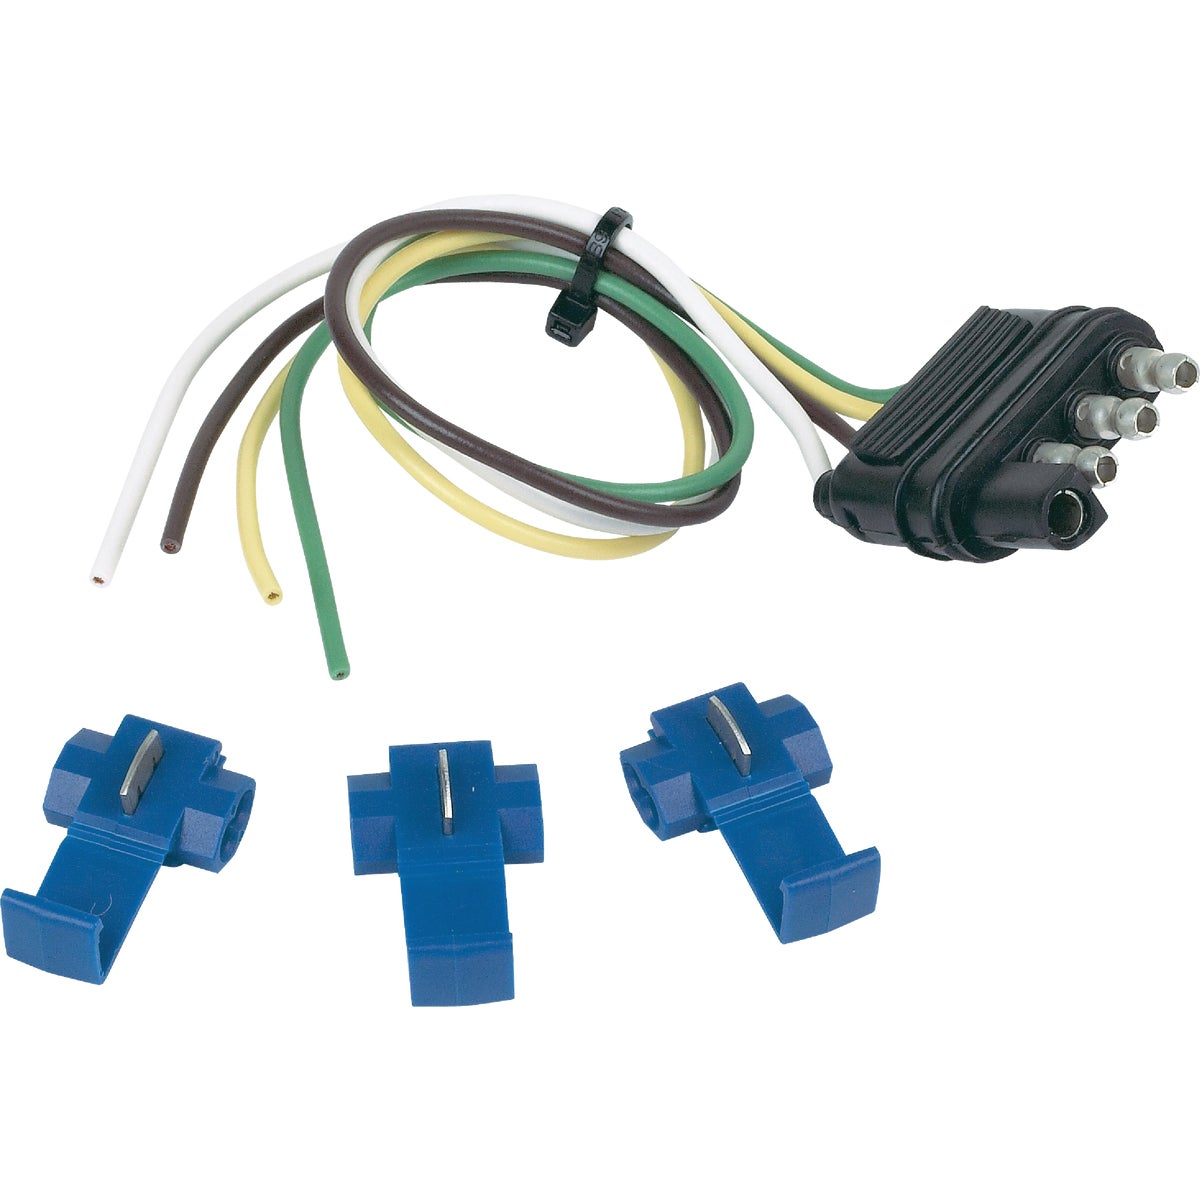 "12"" EXT FLAT WIRE KIT - 48105 by Hopkins Mfg Corp"